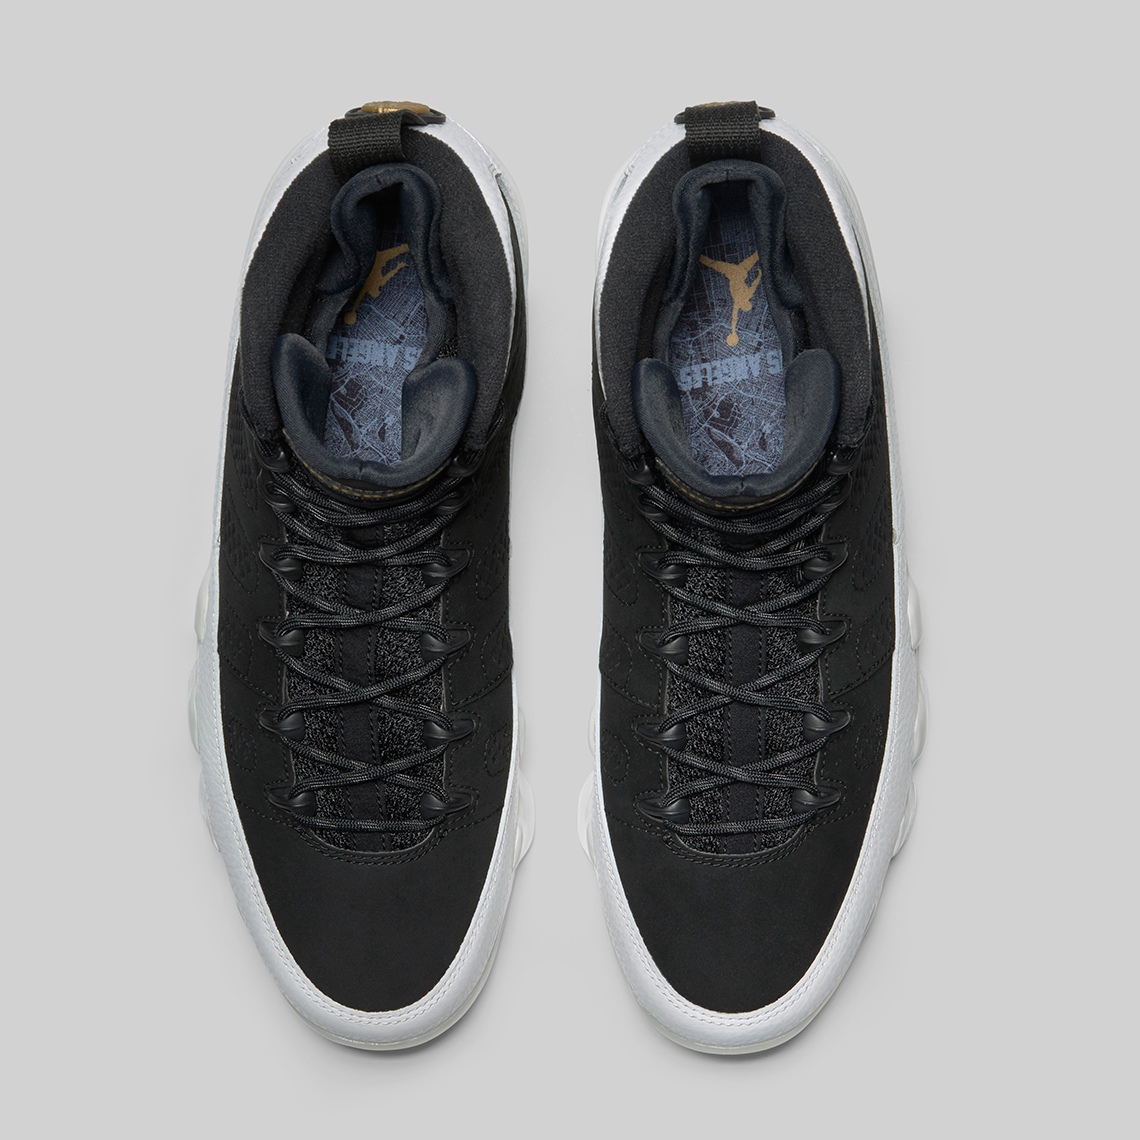 check out 40723 0363e ... white gold blacknew release jordans 2f2c0 73719  official air jordan 9  la all star release date february 10th 2018 190. color black